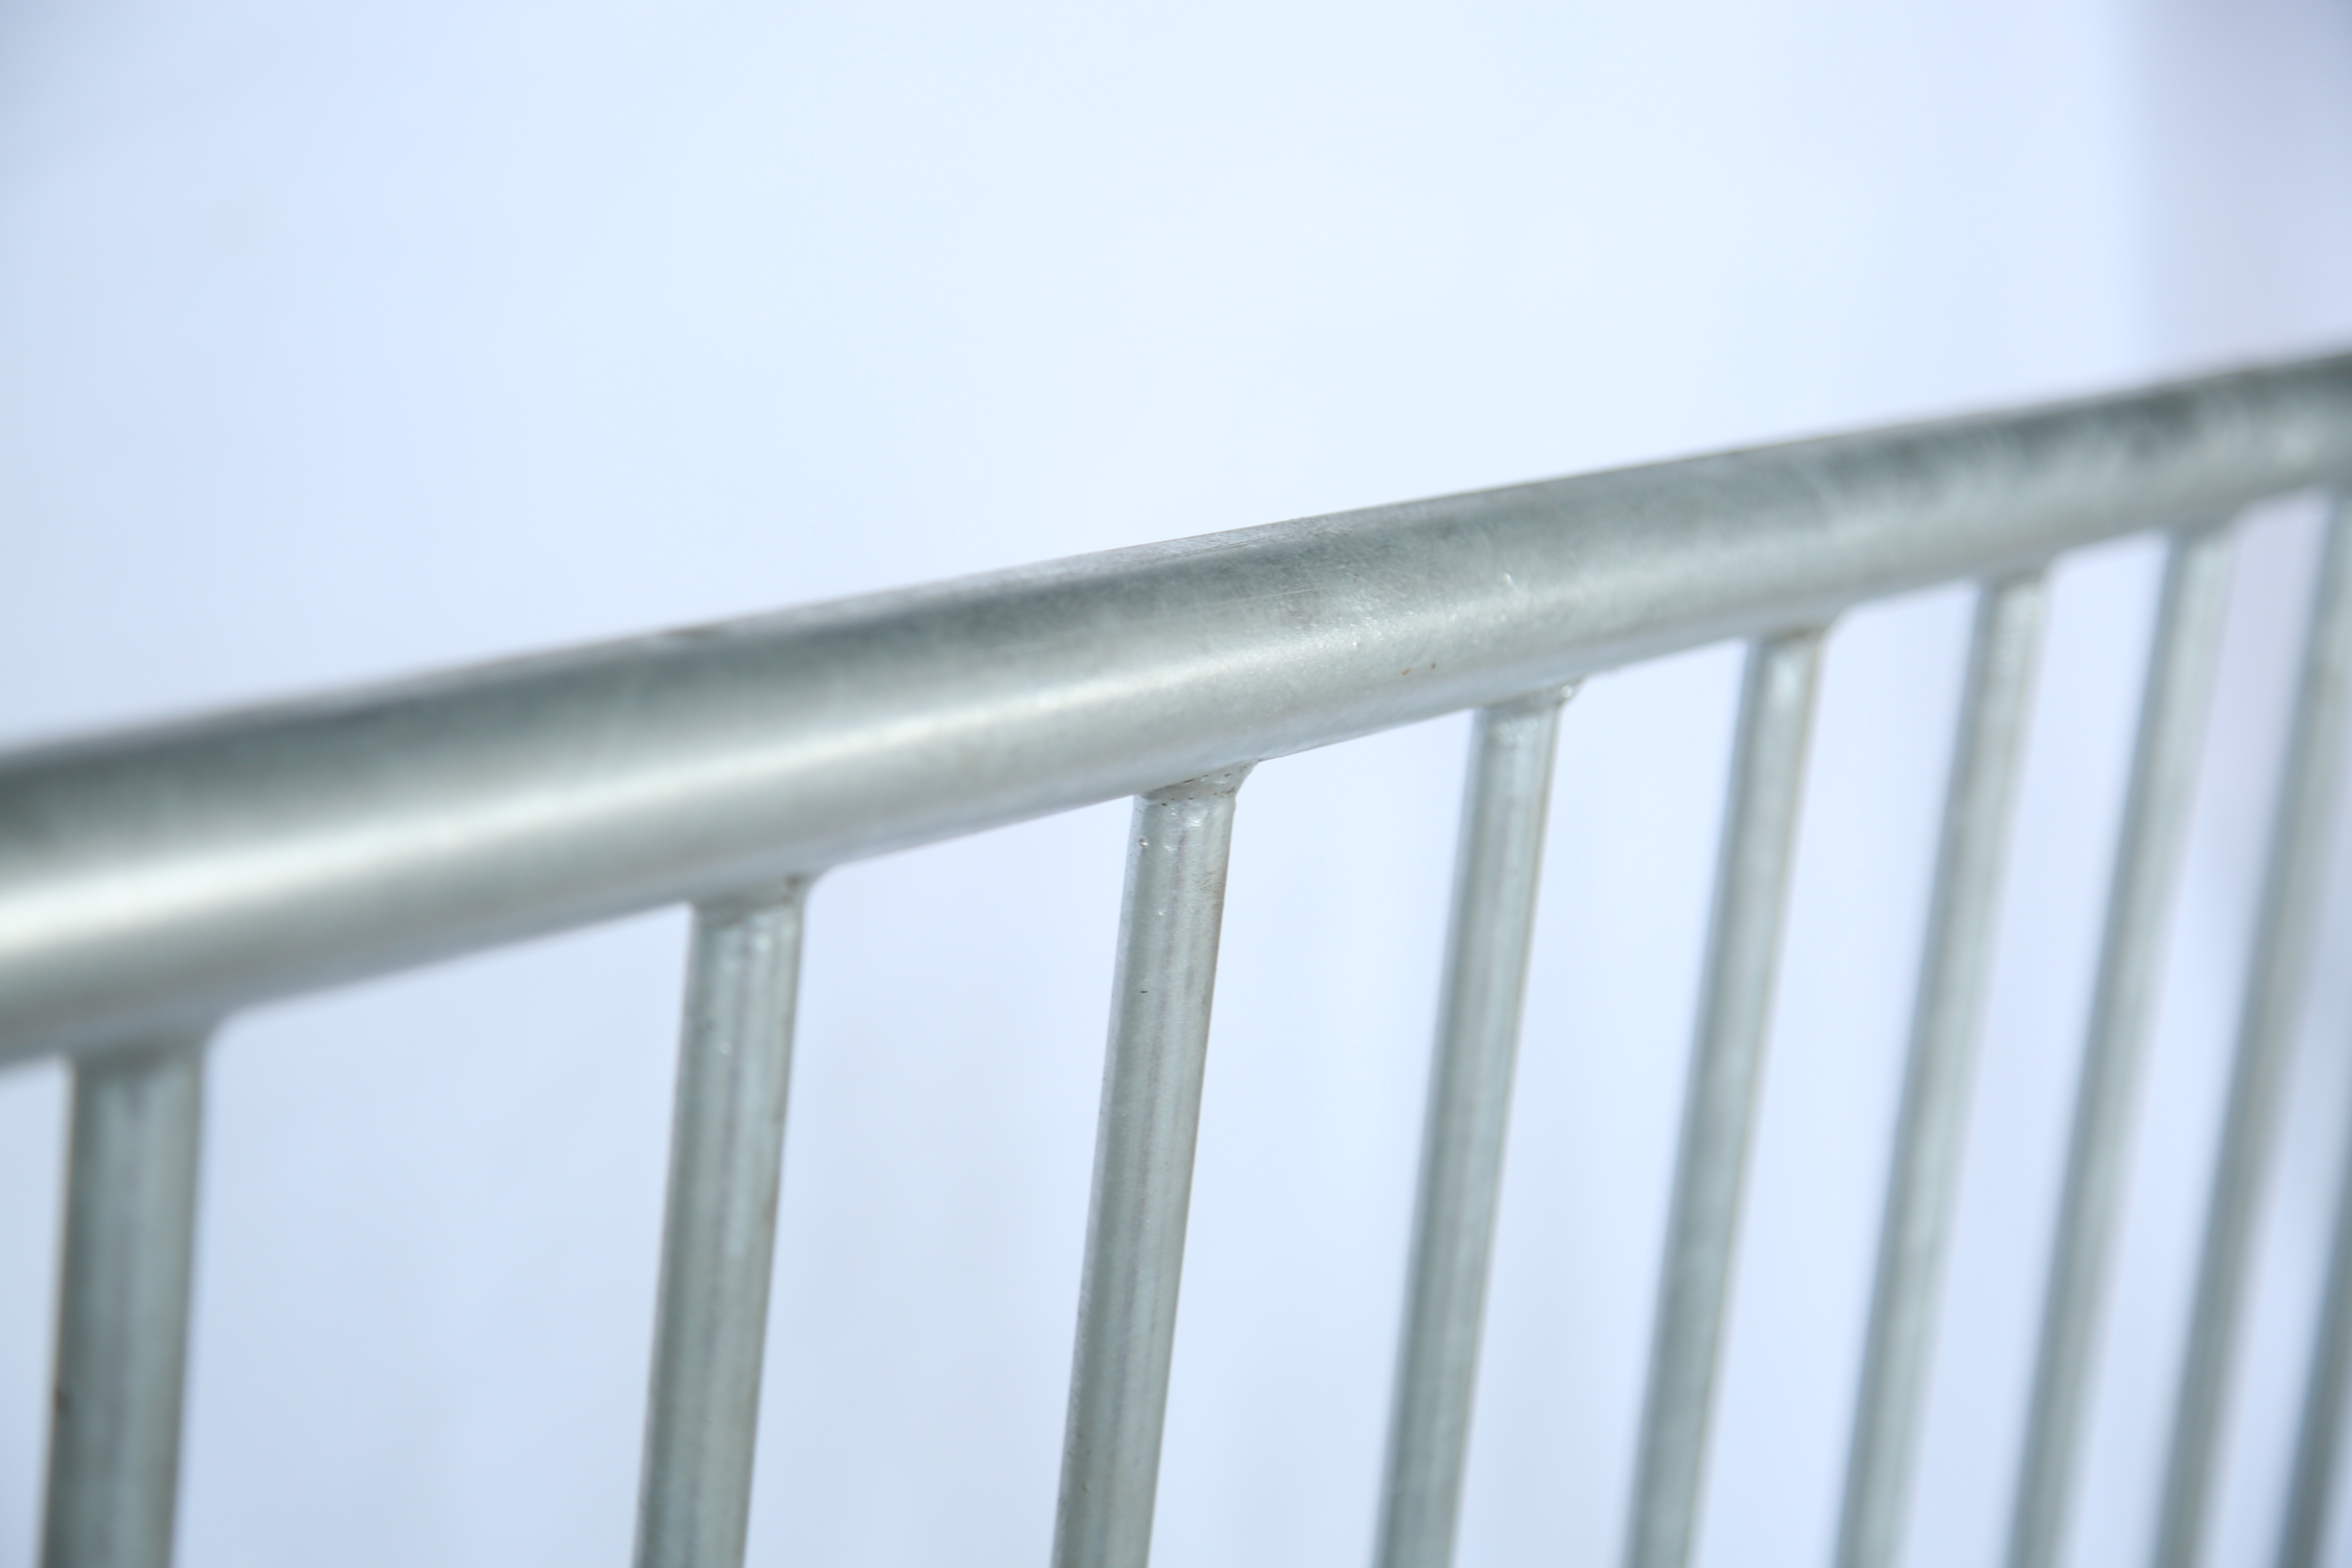 The upright infilled tube is fulled welded onto the frame tube